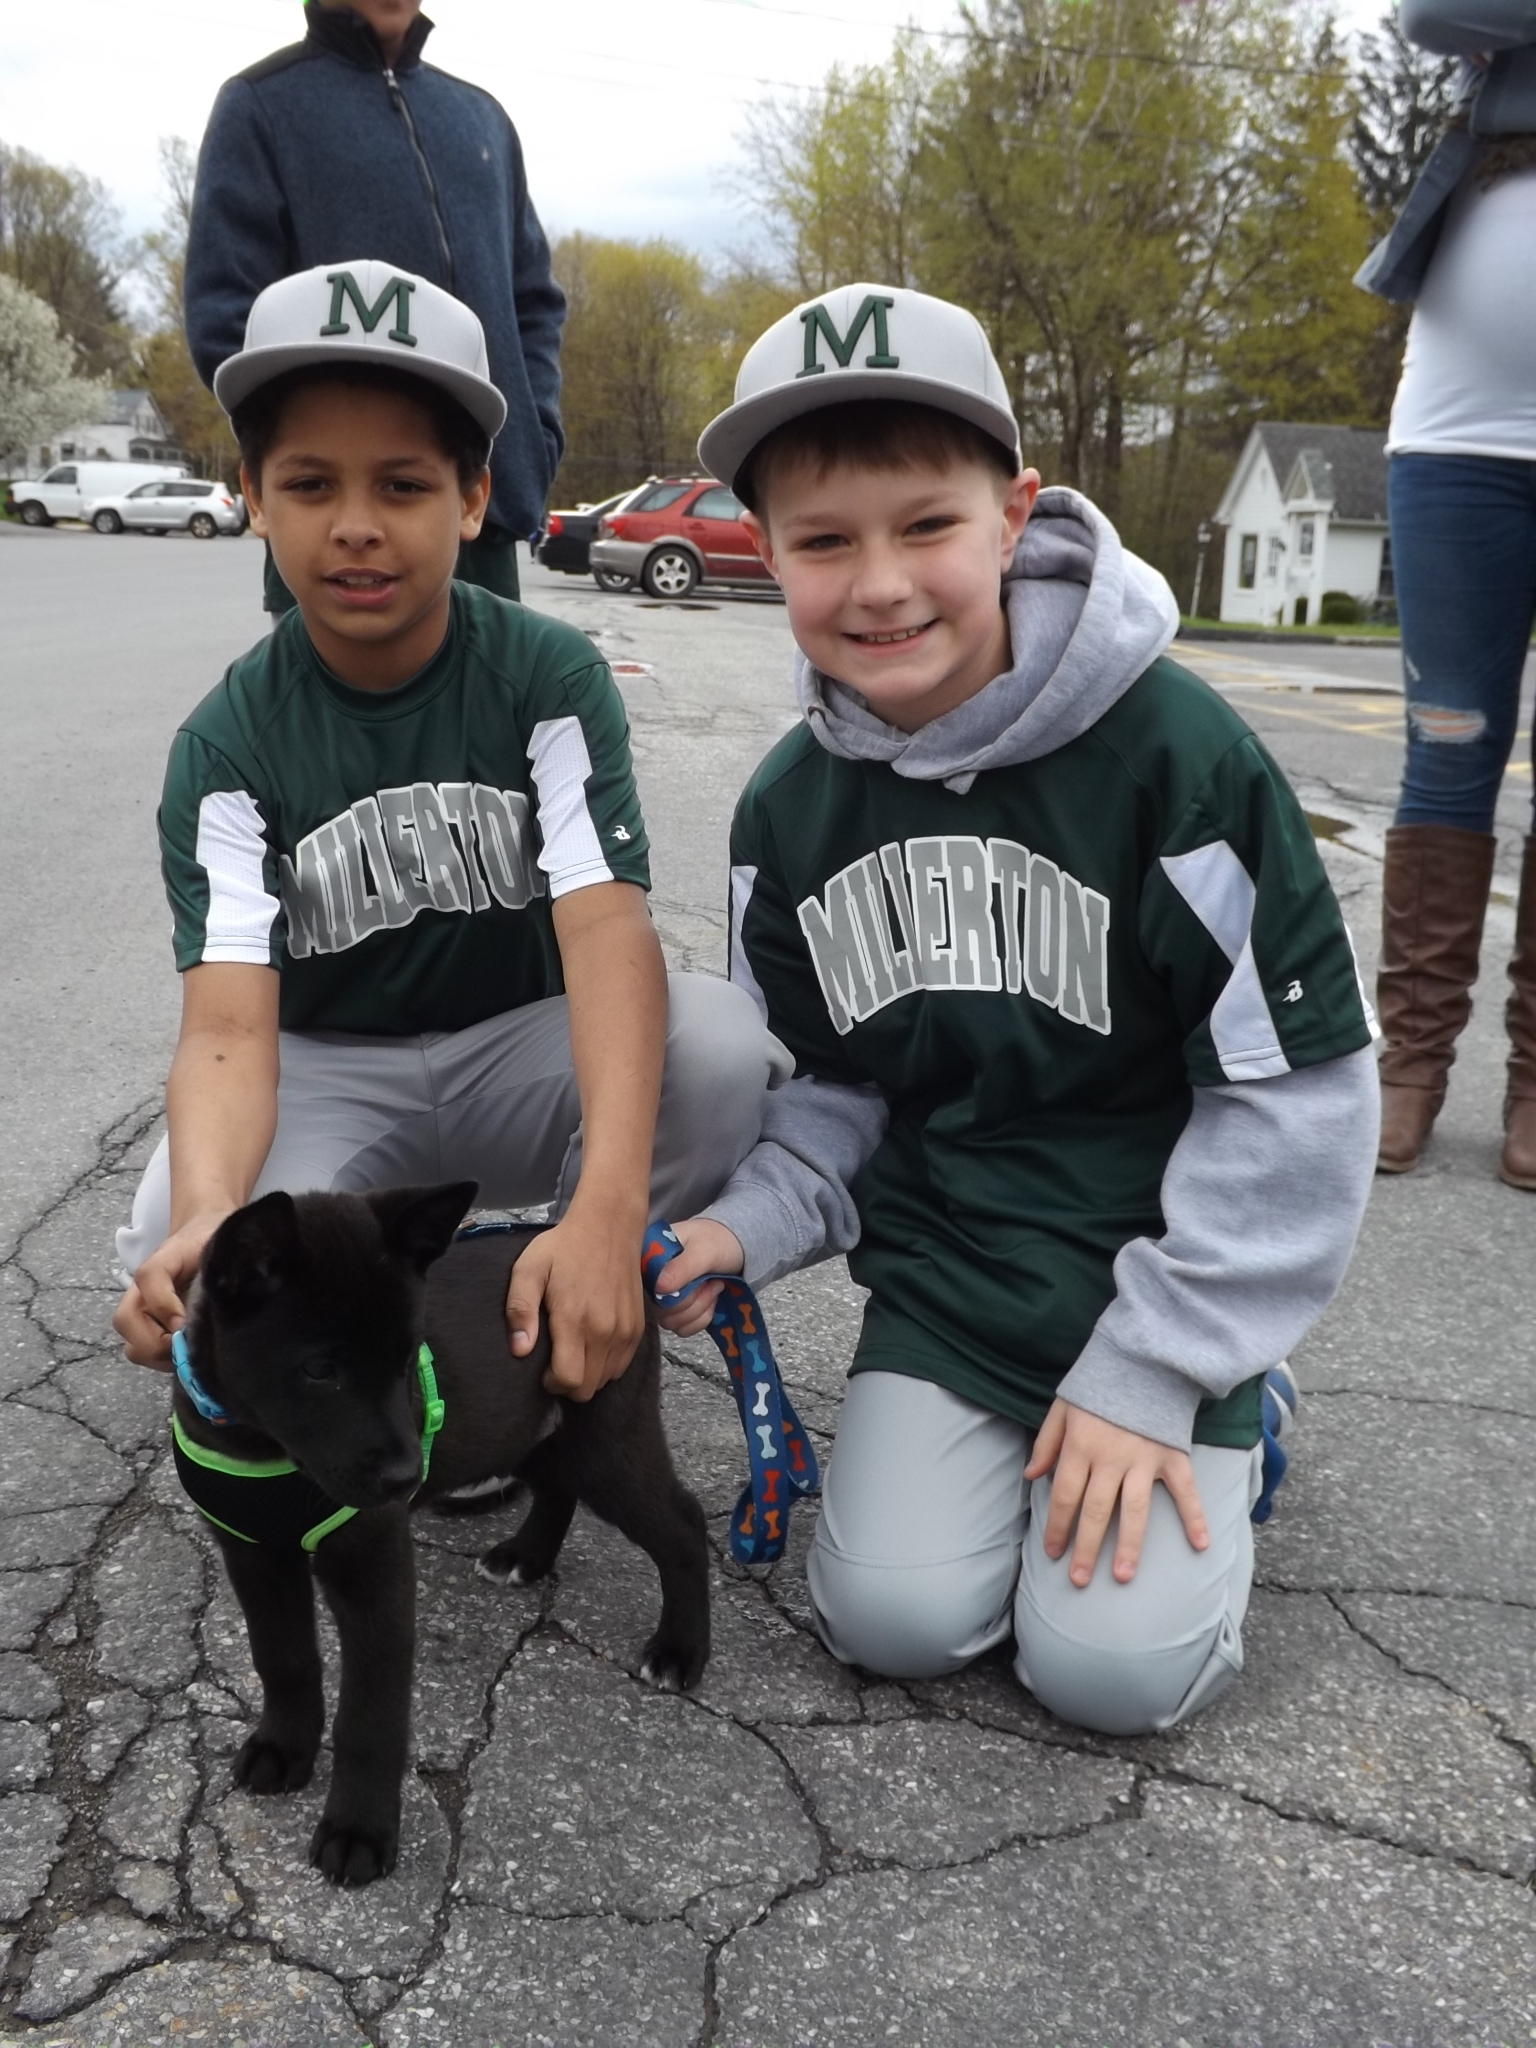 <strong>From left, Millerton baseball teammates Jaishaun O'Halloran and Brayden Selfridge posed for a 2019 Opening Day photo with Tucker the puppy.<em>Archive photos by Kaitlin Lyle</em></strong>